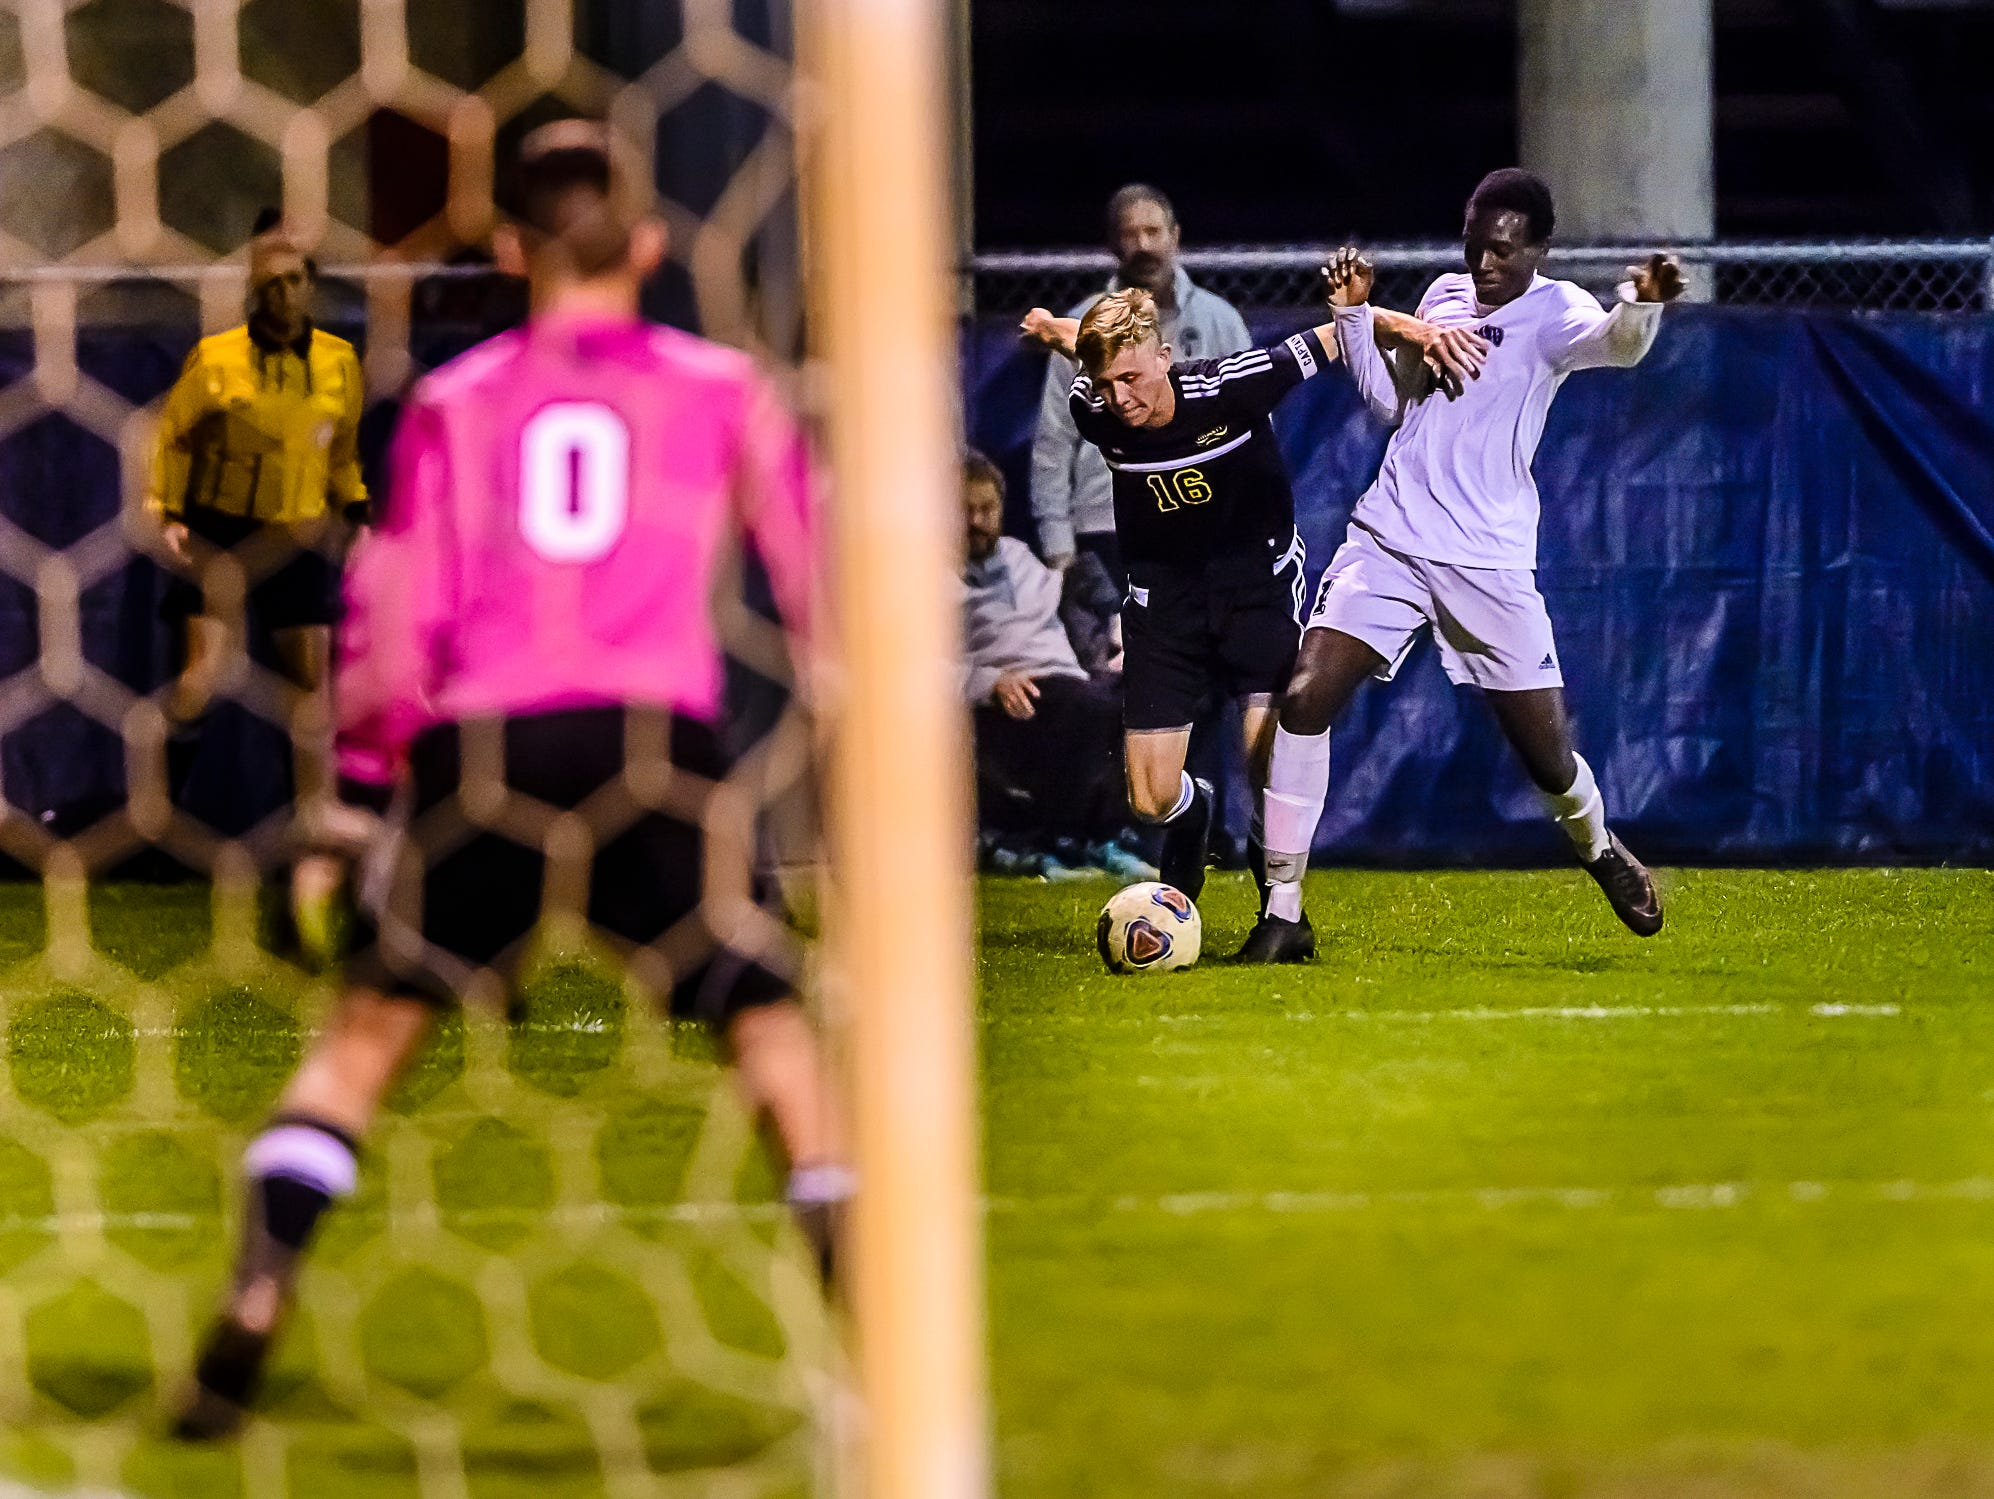 Hunter Nash ,16 of Haslett fights for position on the ball with Sam Lebbie ,right, of East Lansing as the Haslett goalie Dubs Westerland ,0, readies himself in the 1st half of their Gold Cup Final game Tuesday October 11, 2016 in Mason. KEVIN W. FOWLER PHOTO